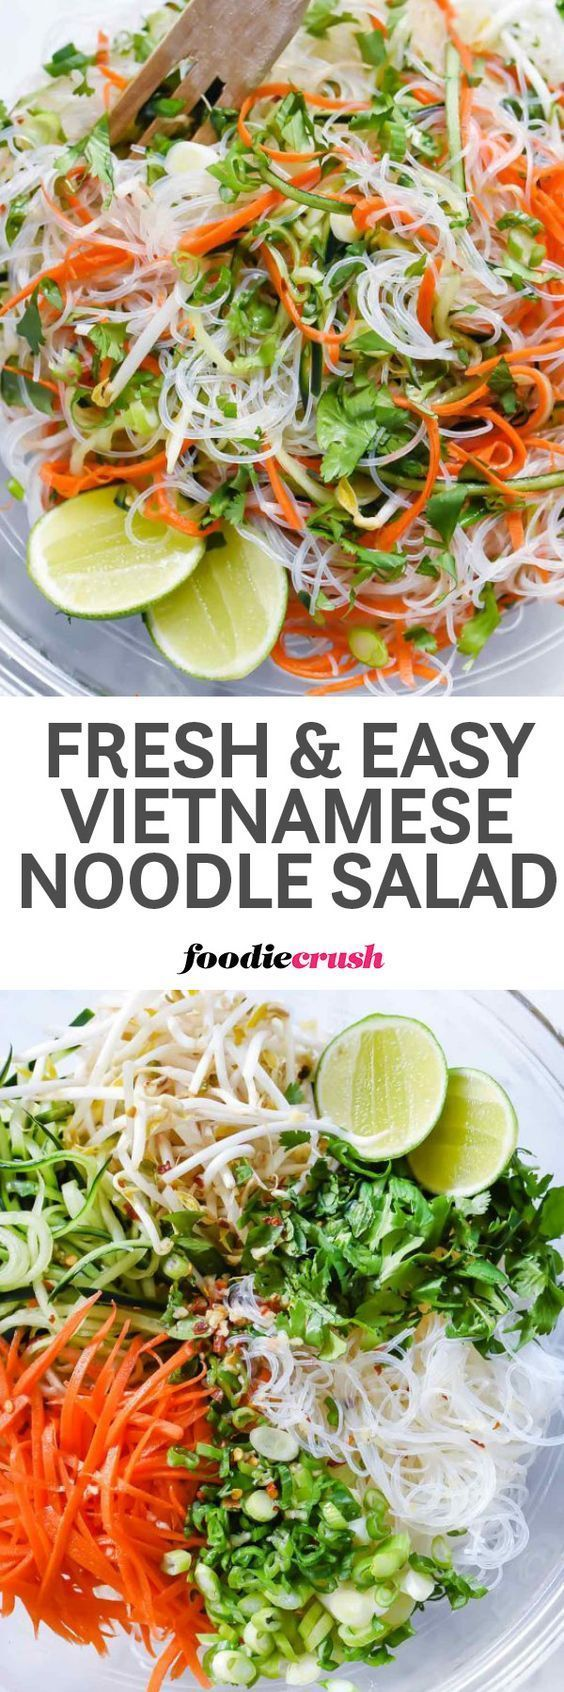 Fresh and Easy Vietnamese Noodle Salad Recipe | Spring Rolls Salad Recipe | Rice Noodle Salad Recipe | Vermicelli Noodle Recipe foodiecrush.com